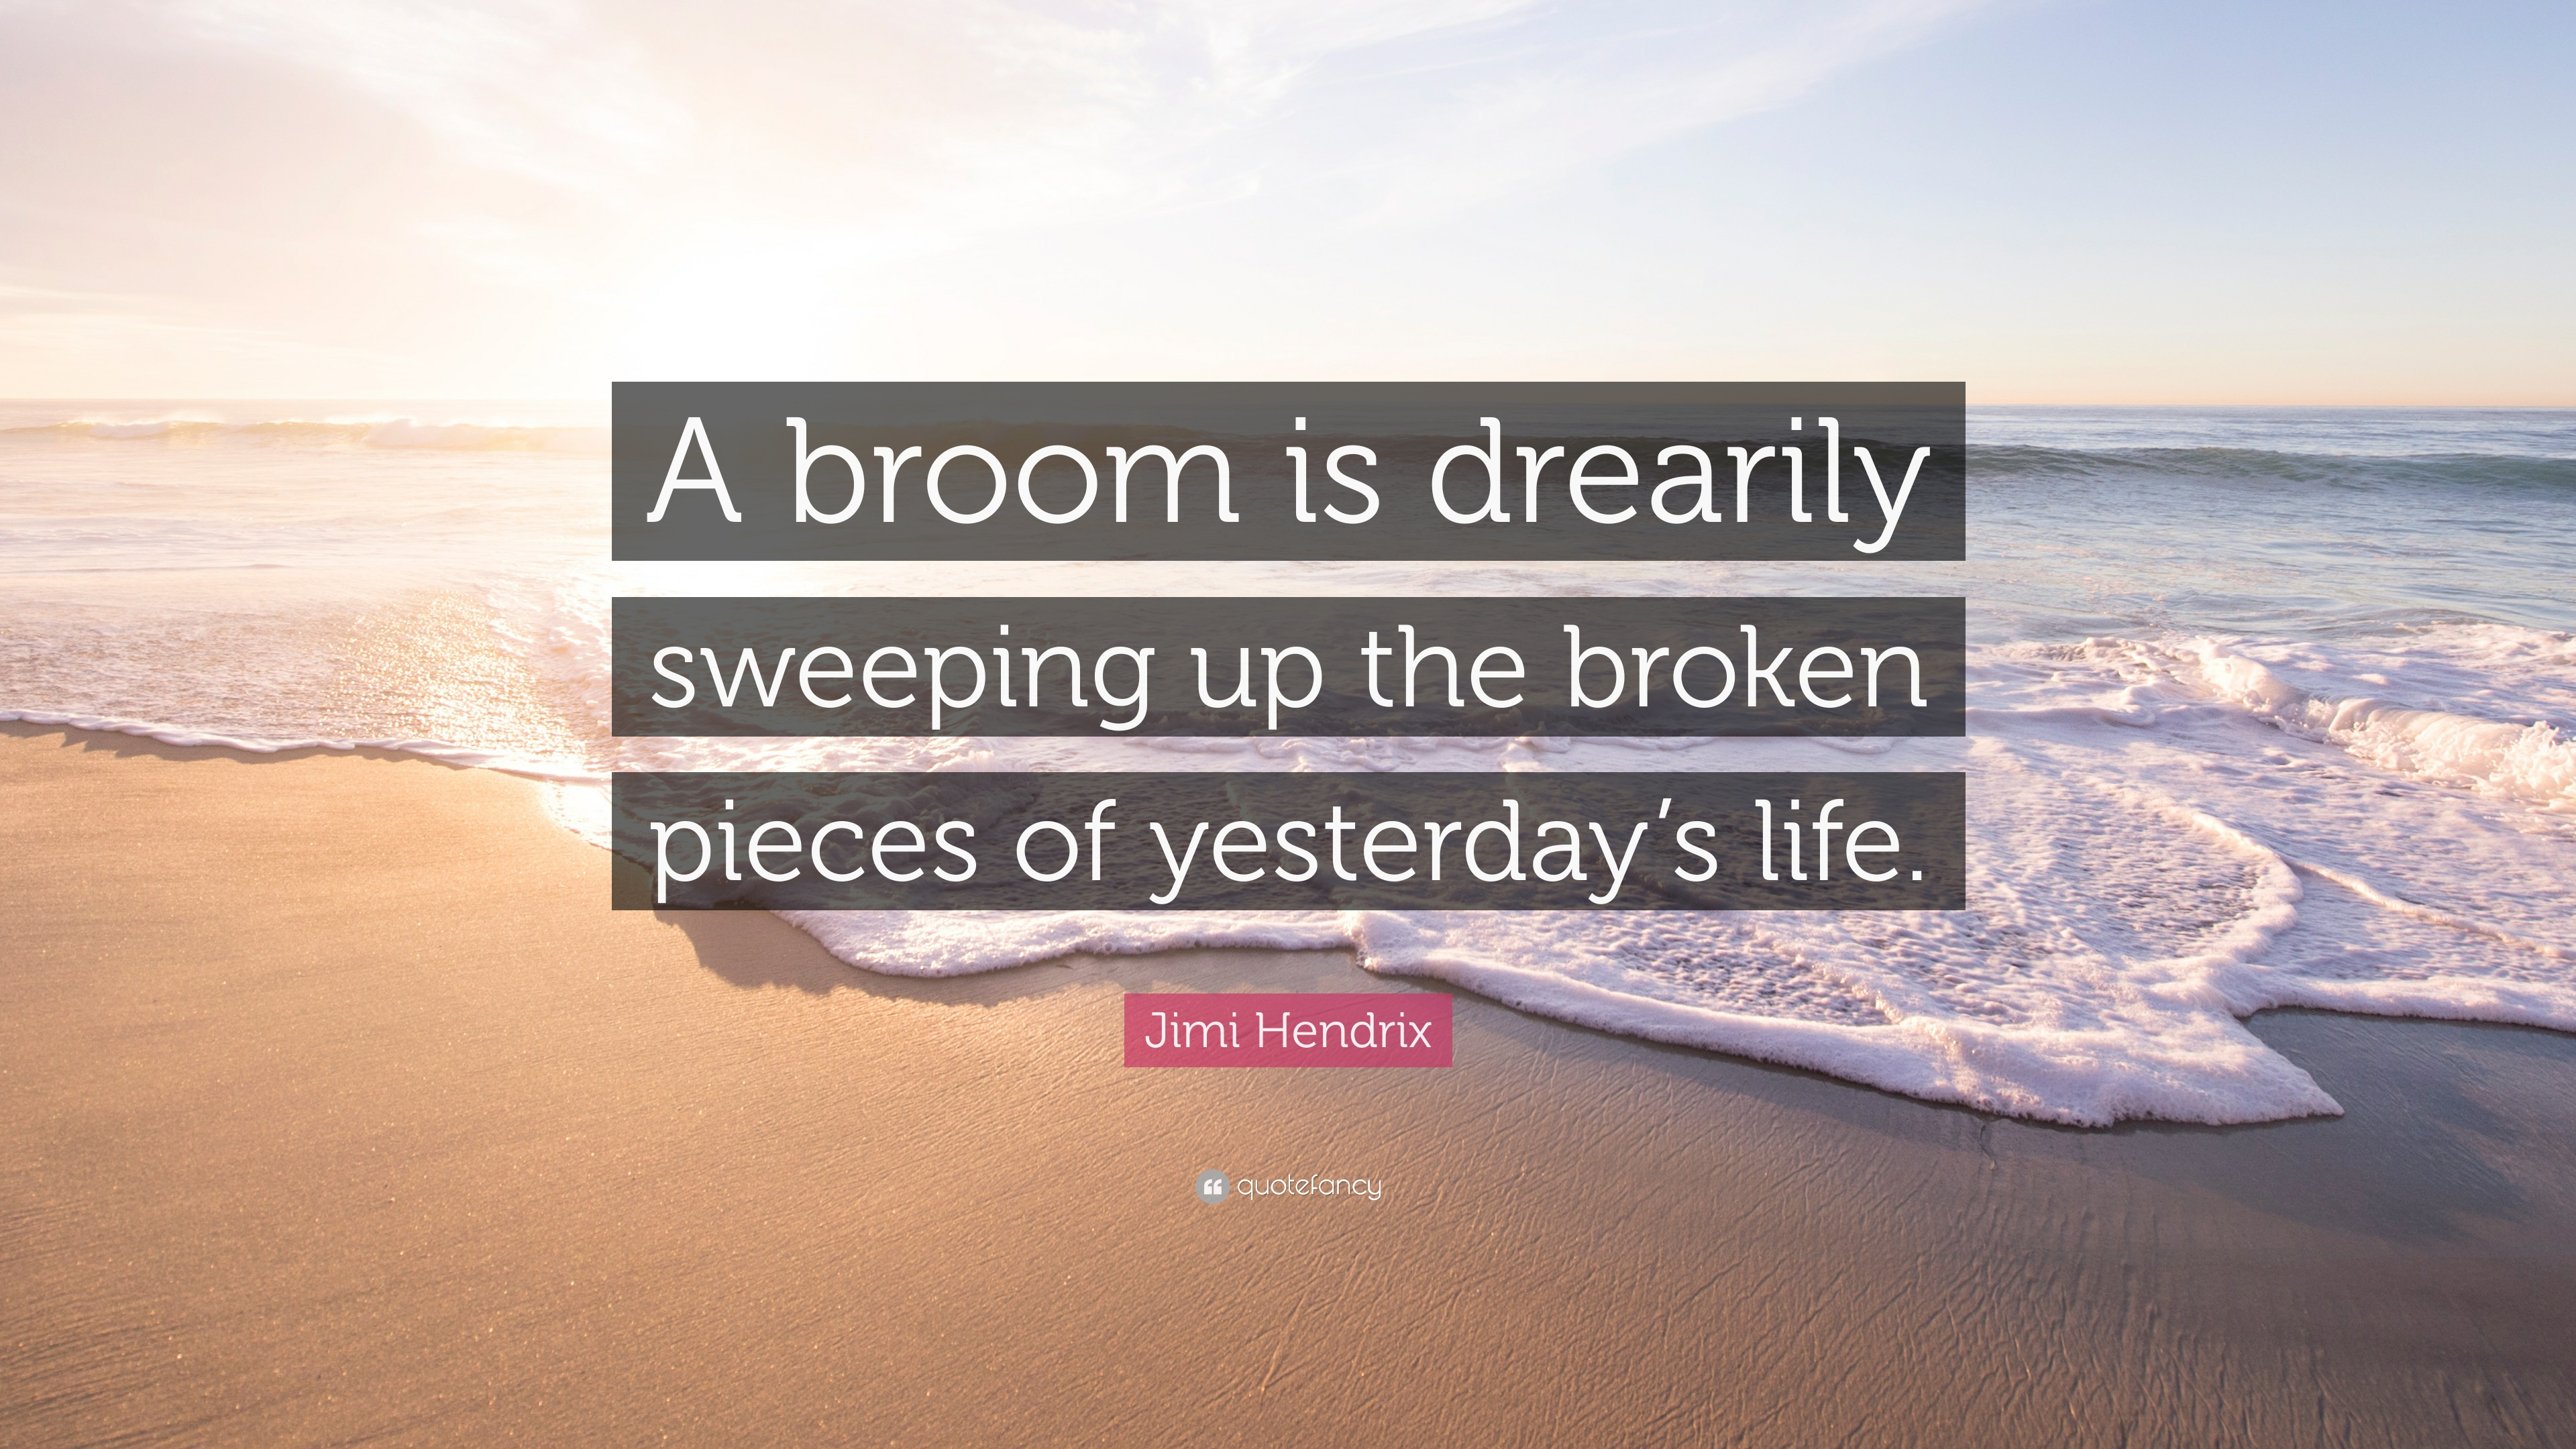 jimi hendrix quote a broom is drearily sweeping up the broken